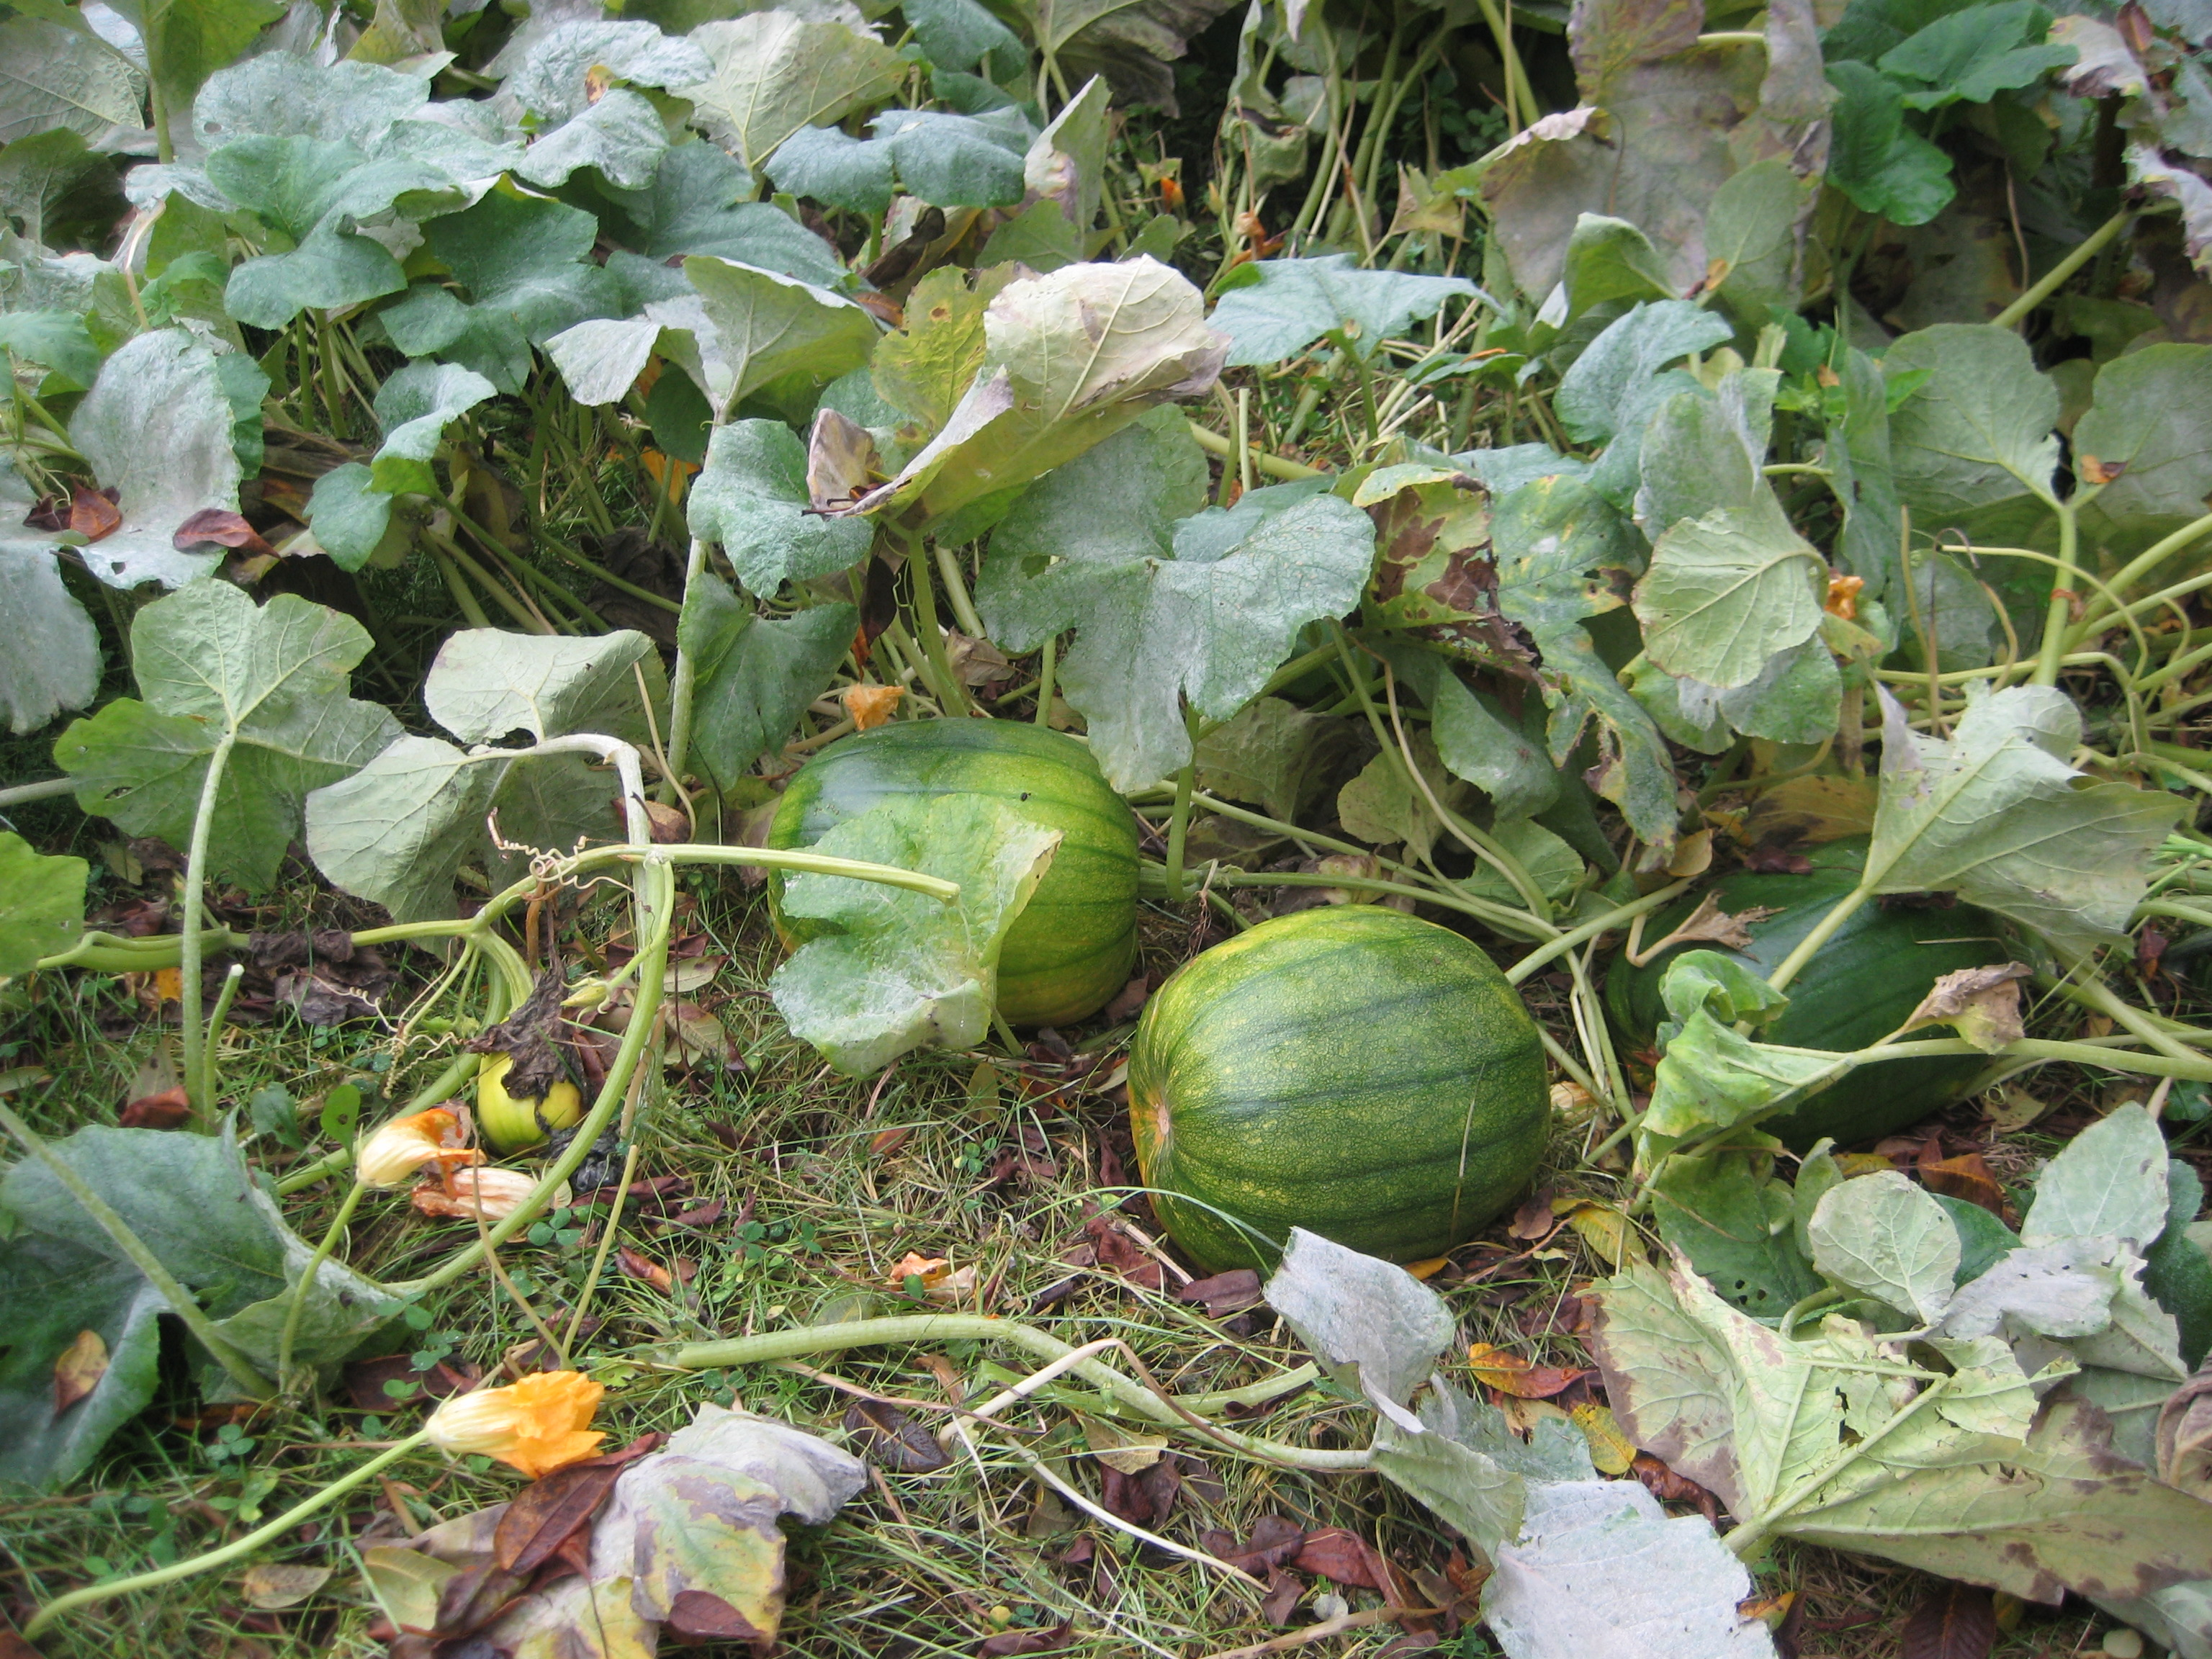 The Mystery Of The Singing Pumpkins